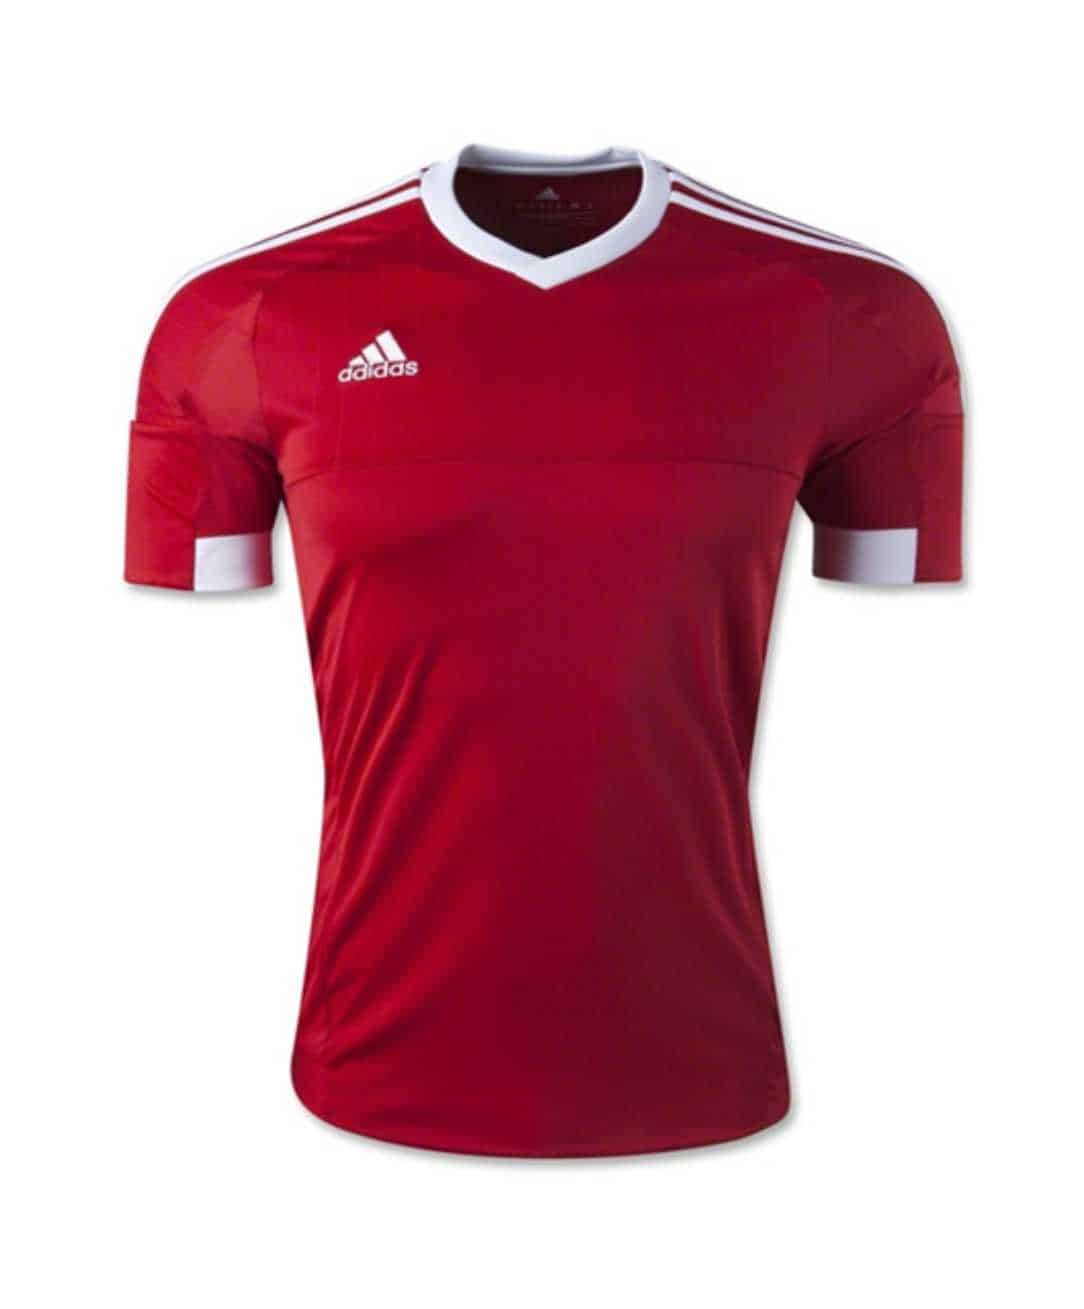 adidas Tiro 15 DryDye Soccer Uniform, The Team Factory - photo#29